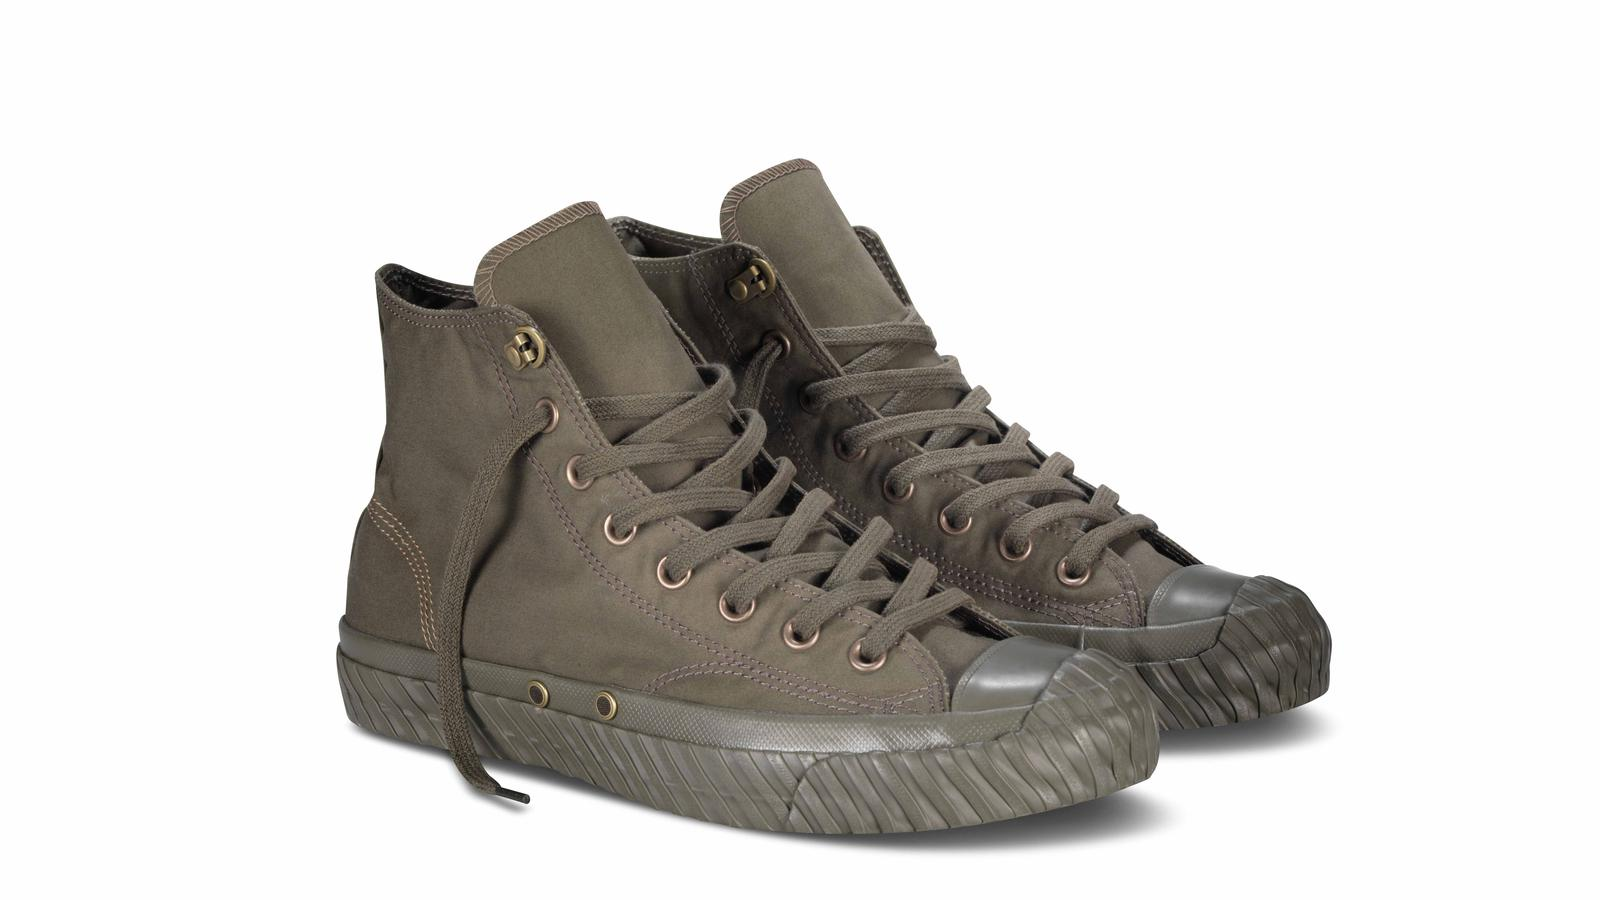 SPRING 2013 NIGEL CABOURN FOR CONVERSE COLLECTION – Sole